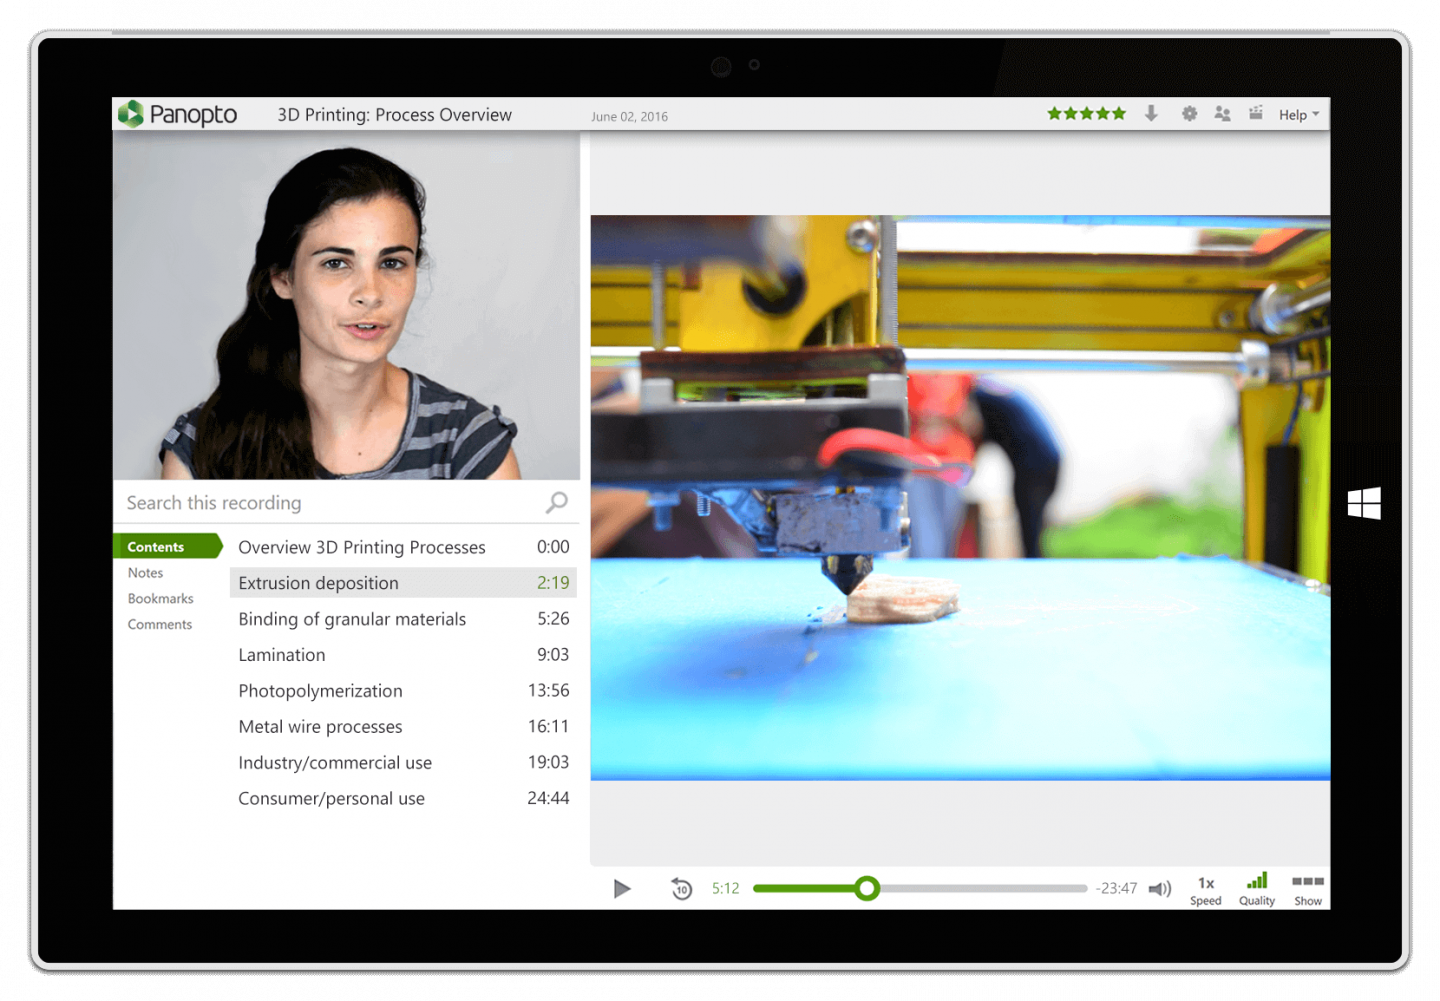 Record detailed lab demonstrations from multiple cameras in high definition with Panopto